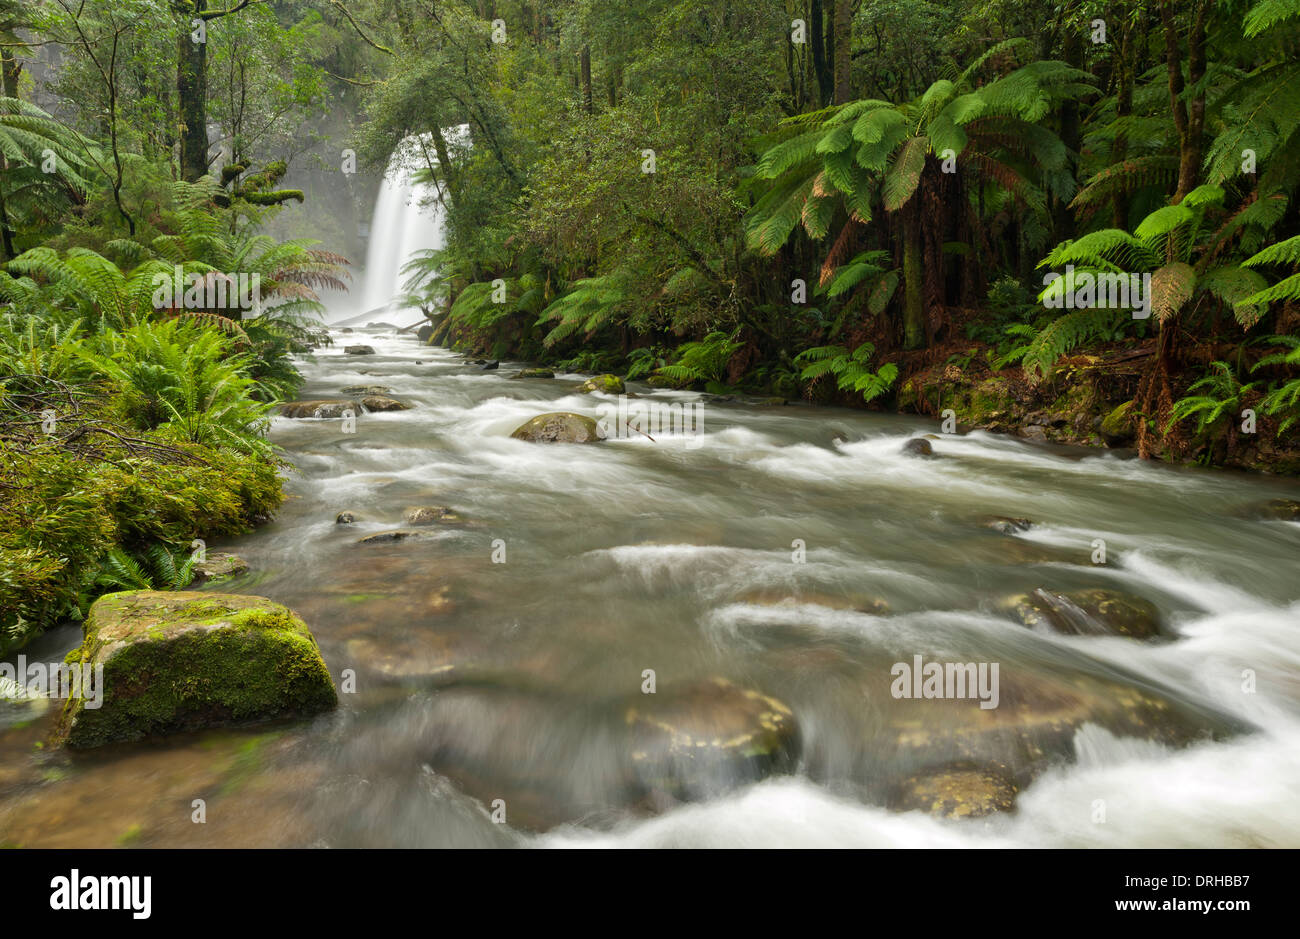 Hopetoun Falls in a fern gully in the Great Otways National Park, Victoria, Australia. - Stock Image